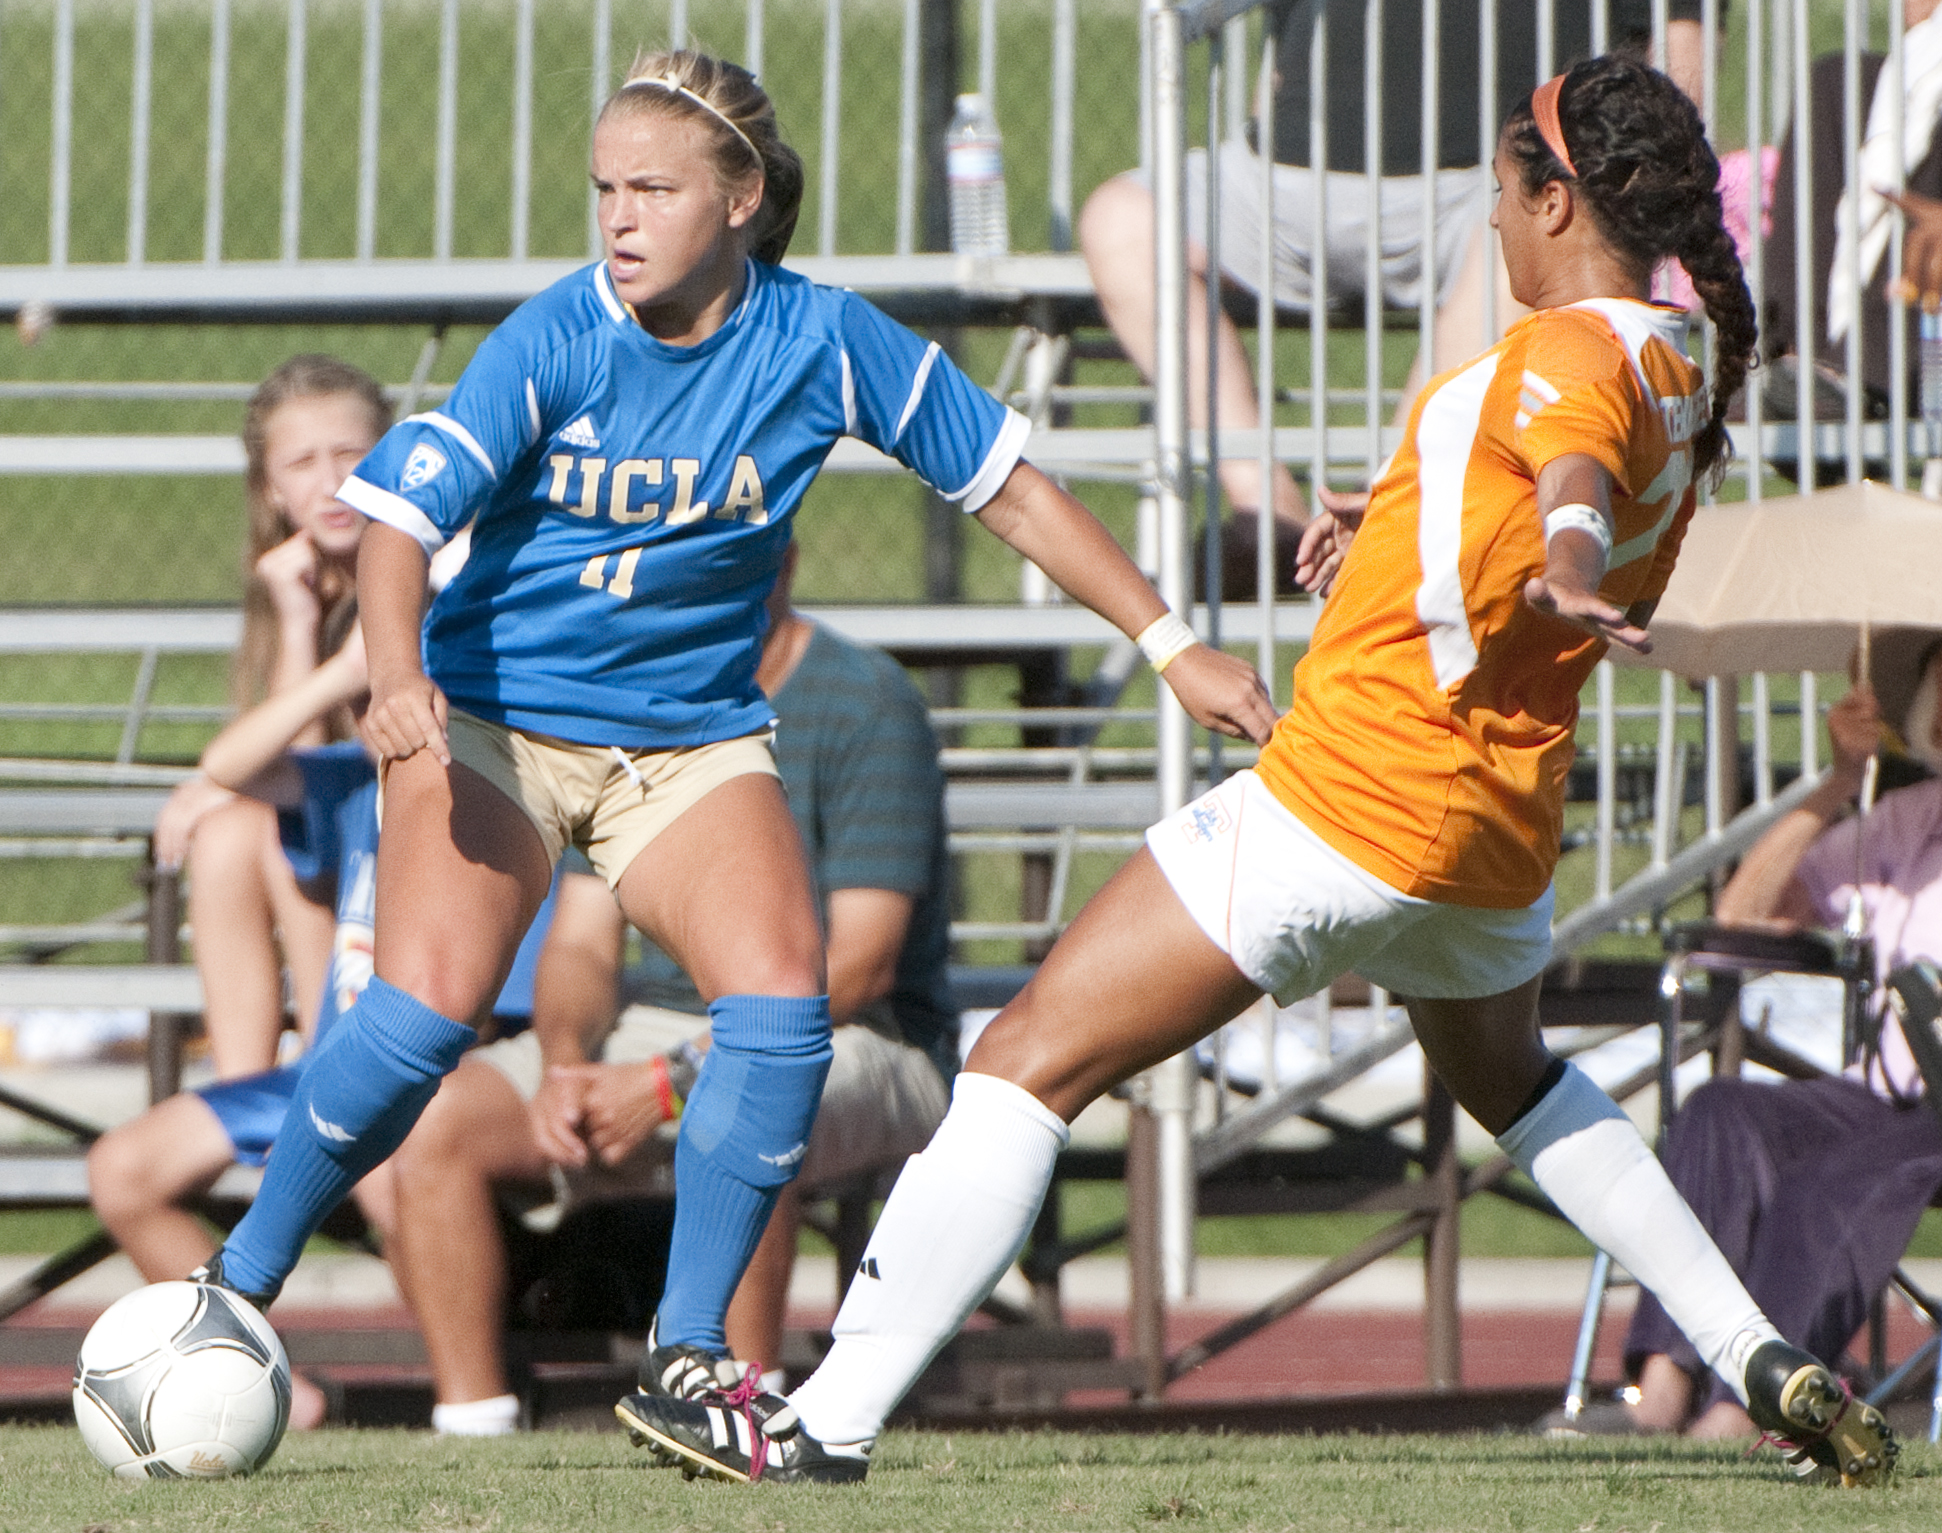 Senior midfielder Chelsea Cline and the women's soccer team take on the Arizona Wildcats in Tucson, Ariz. at 7 p.m.